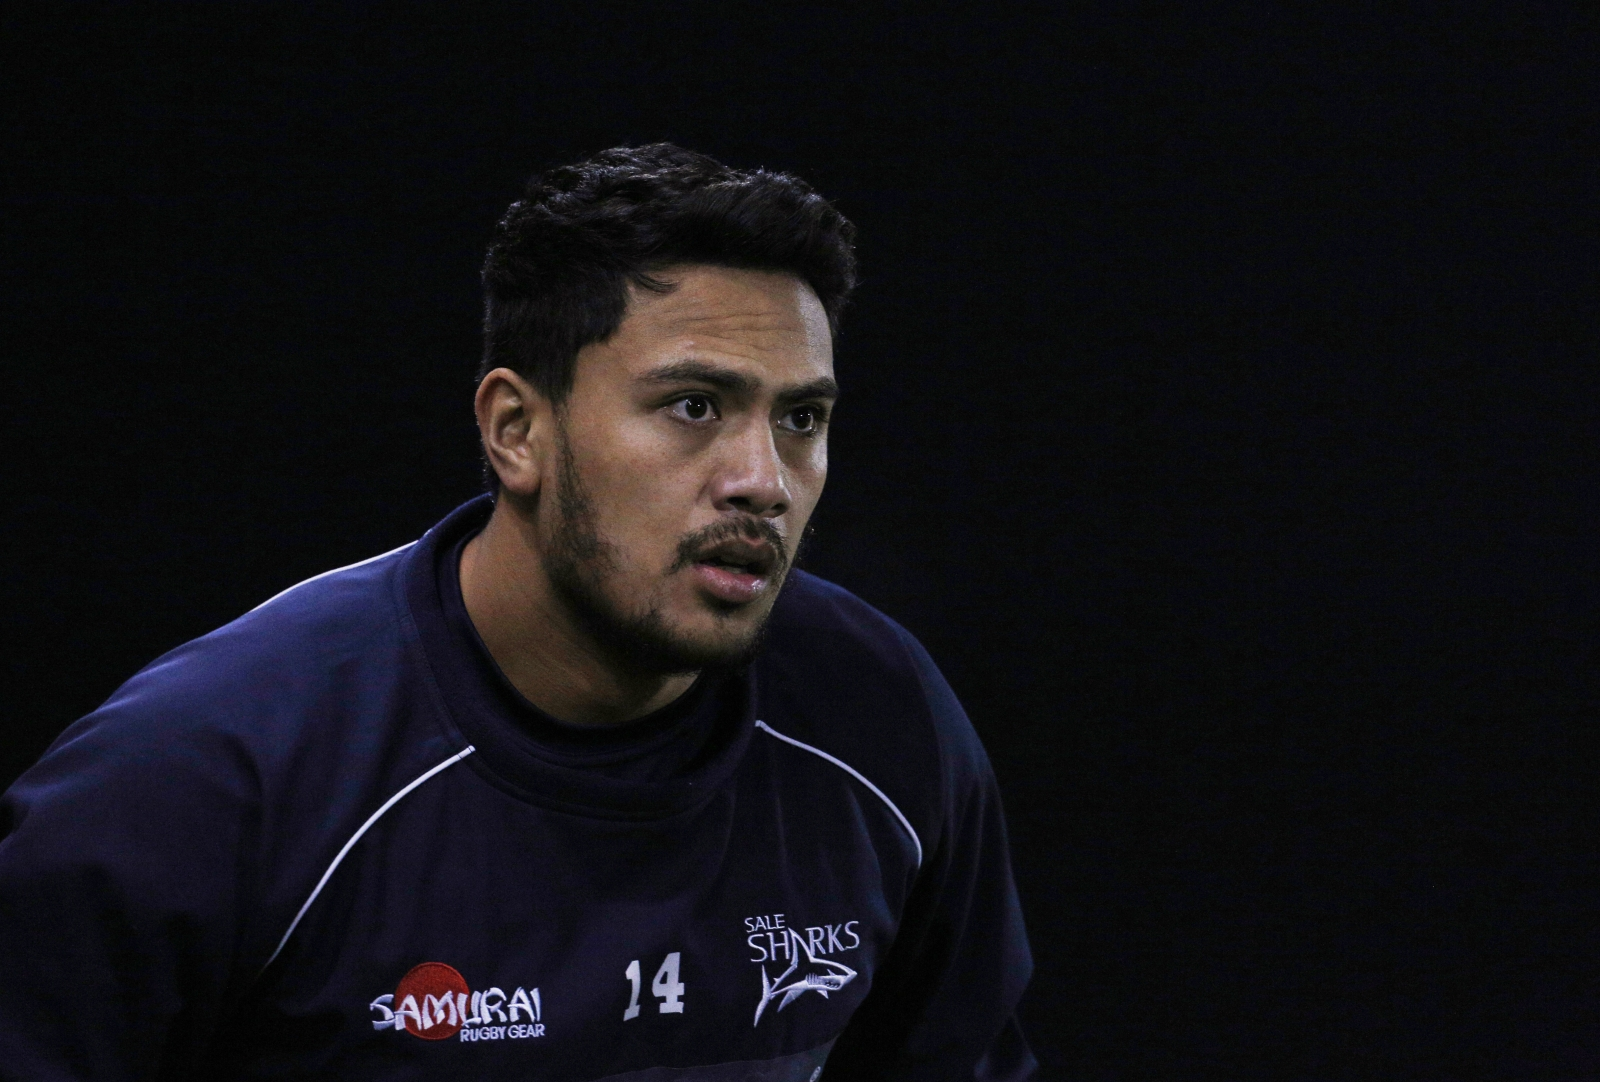 Rugby league convert Denny Solomona eyeing England role as Argentina tour looms